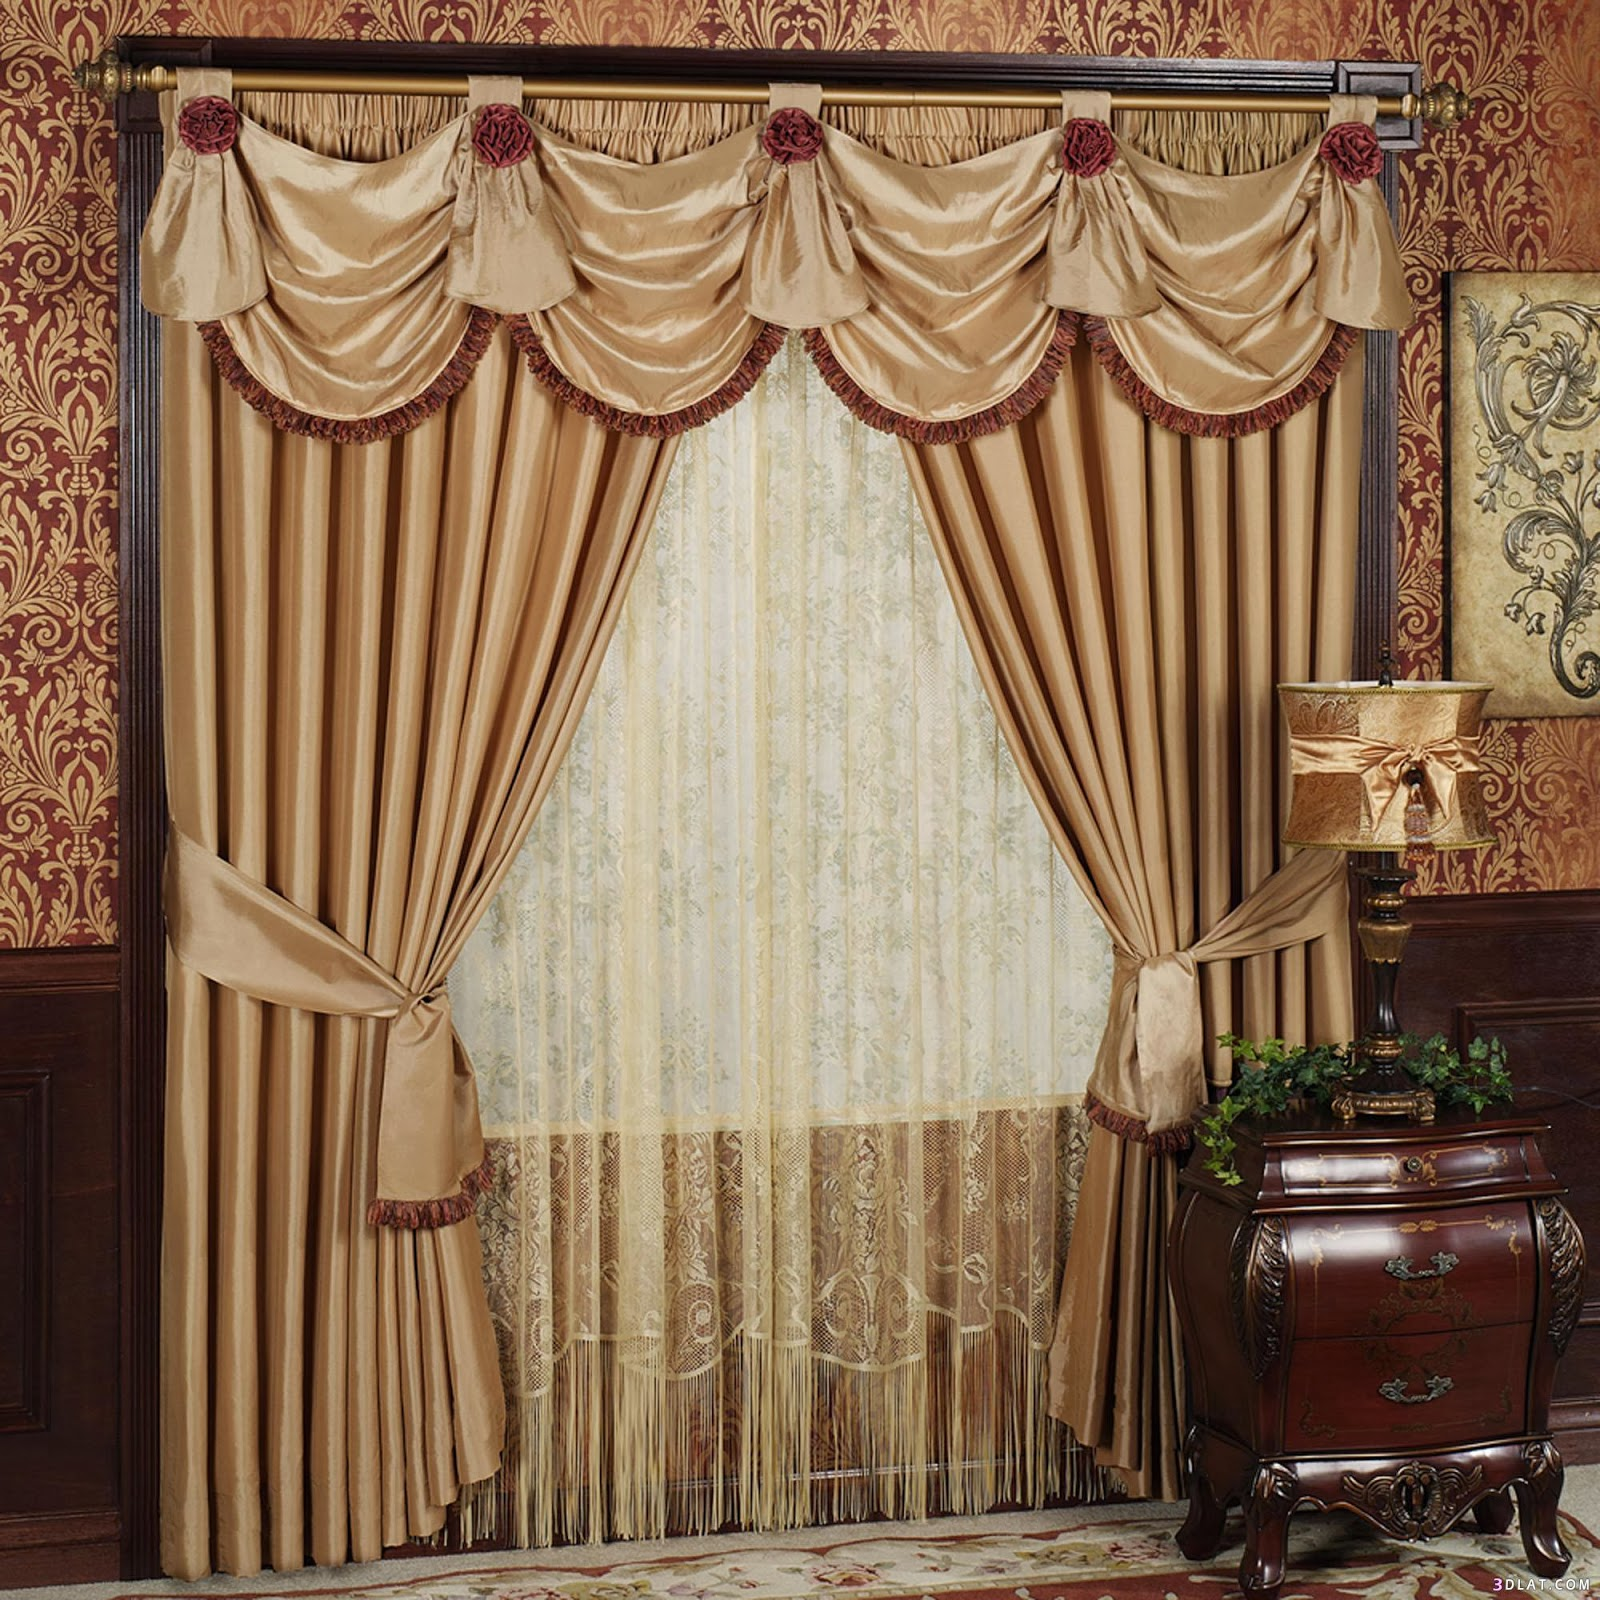 Living Room Design Curtains For Living Room the best design curtain for modern homes living room tab top curtain